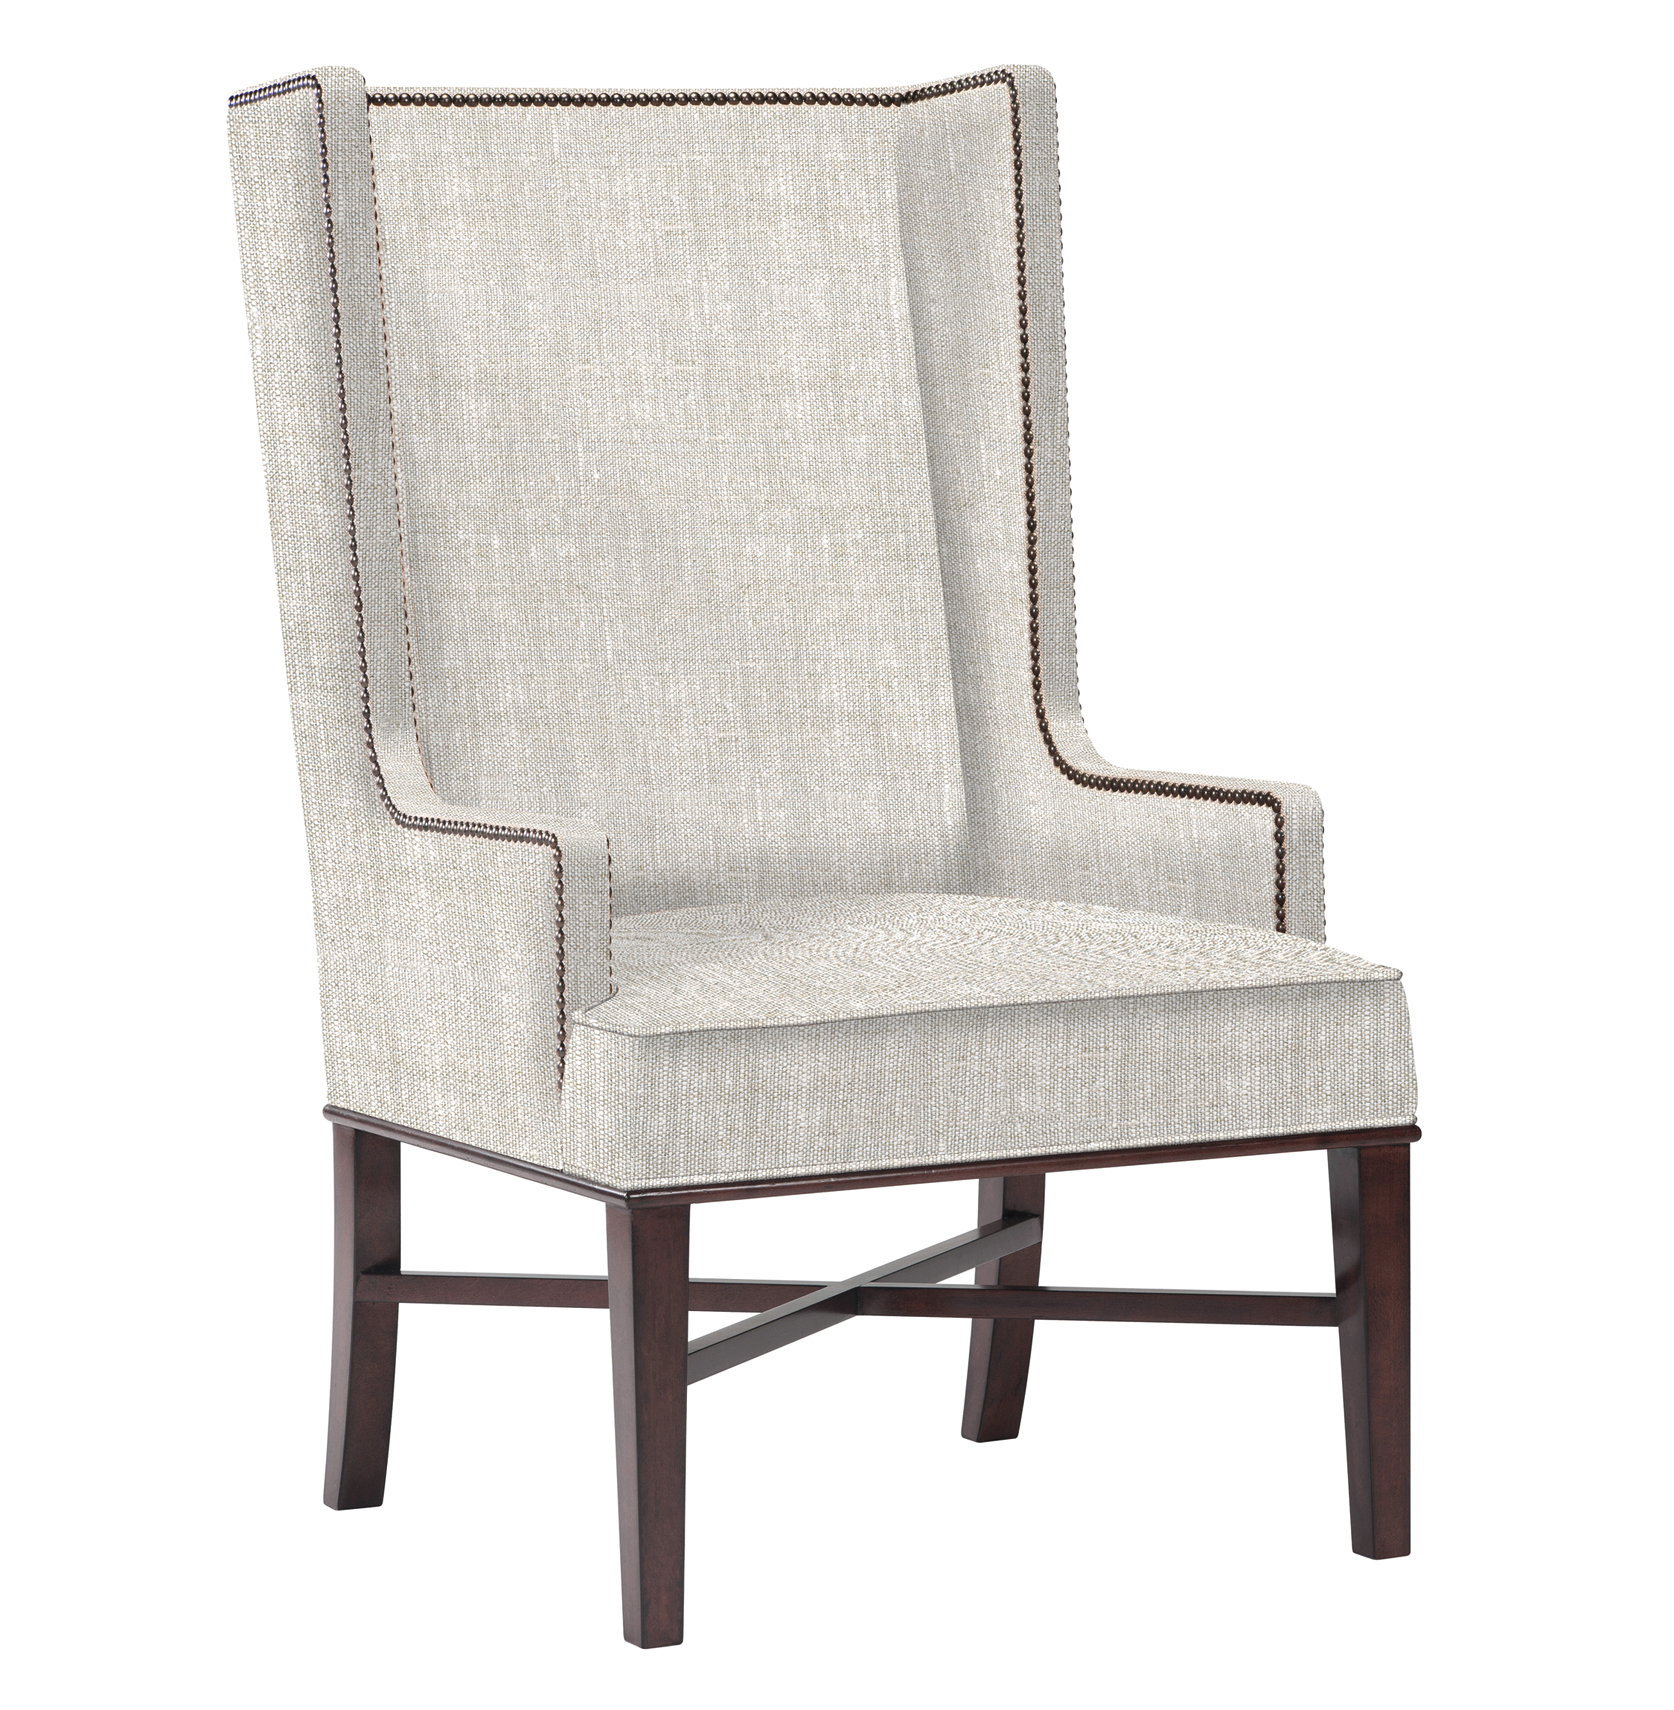 Wingback Dining Chairs Jacqueline Hostess Wing Back Occasional Dining Arm Chair